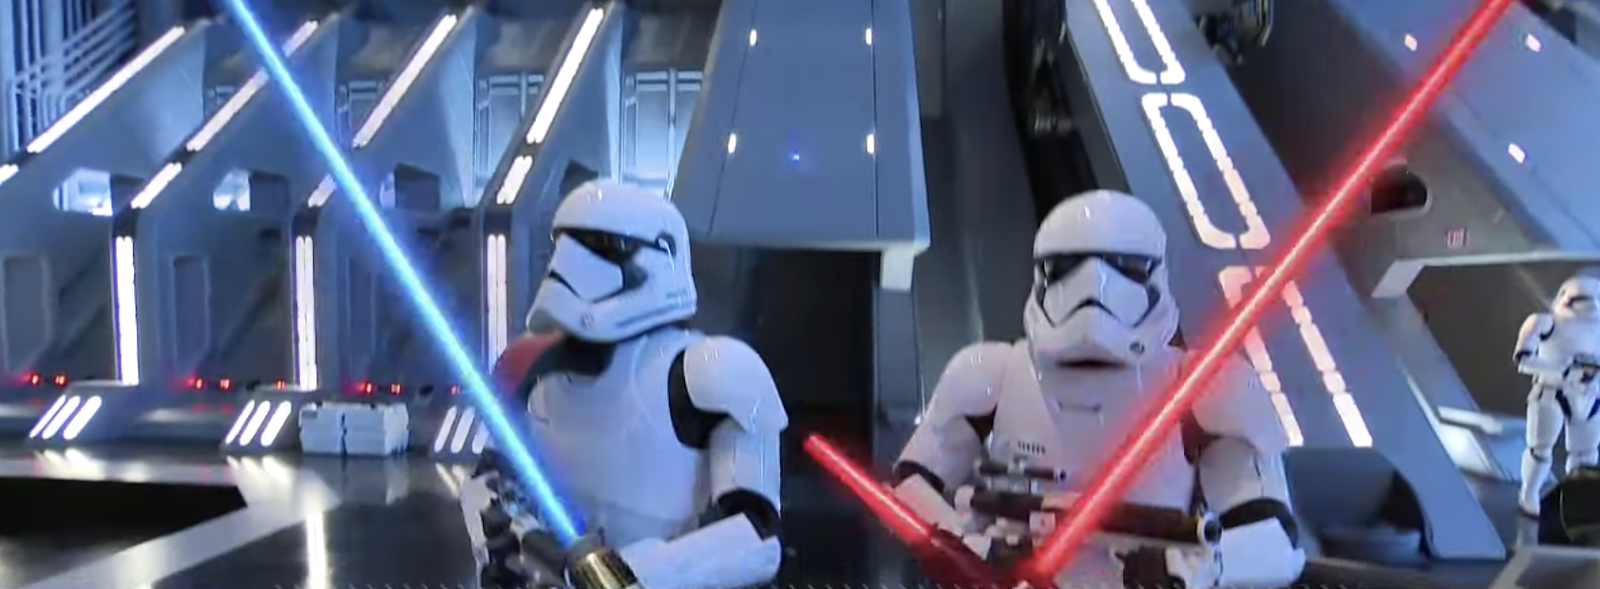 Note: The lightsabers were part of a scene cut animation and are NOT part of the attraction.